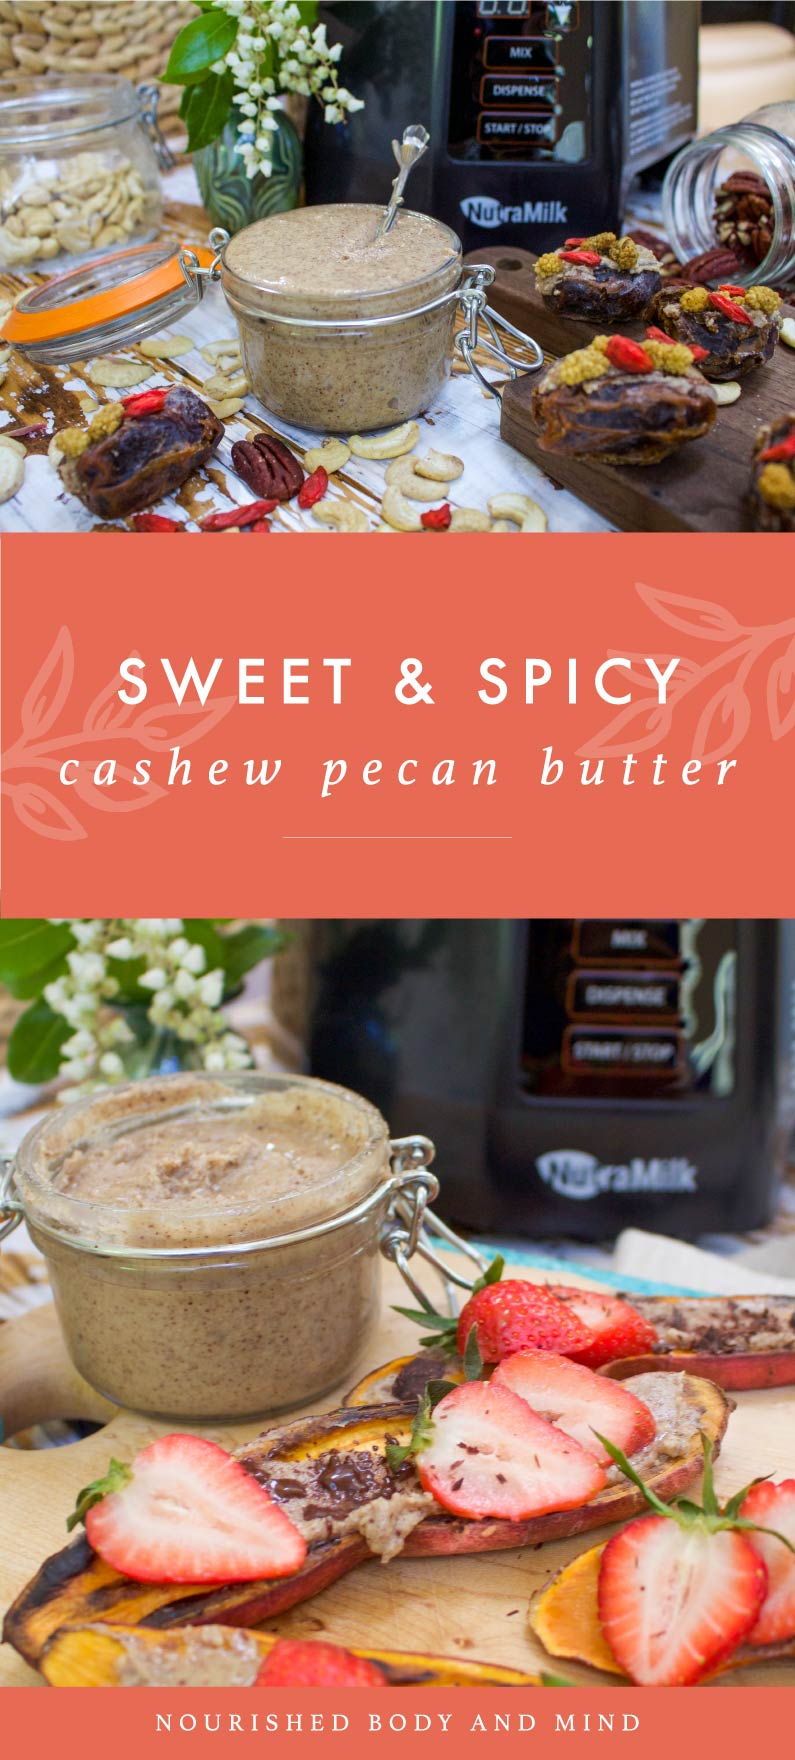 Sweet & Spicy Cashew Pecan Butter